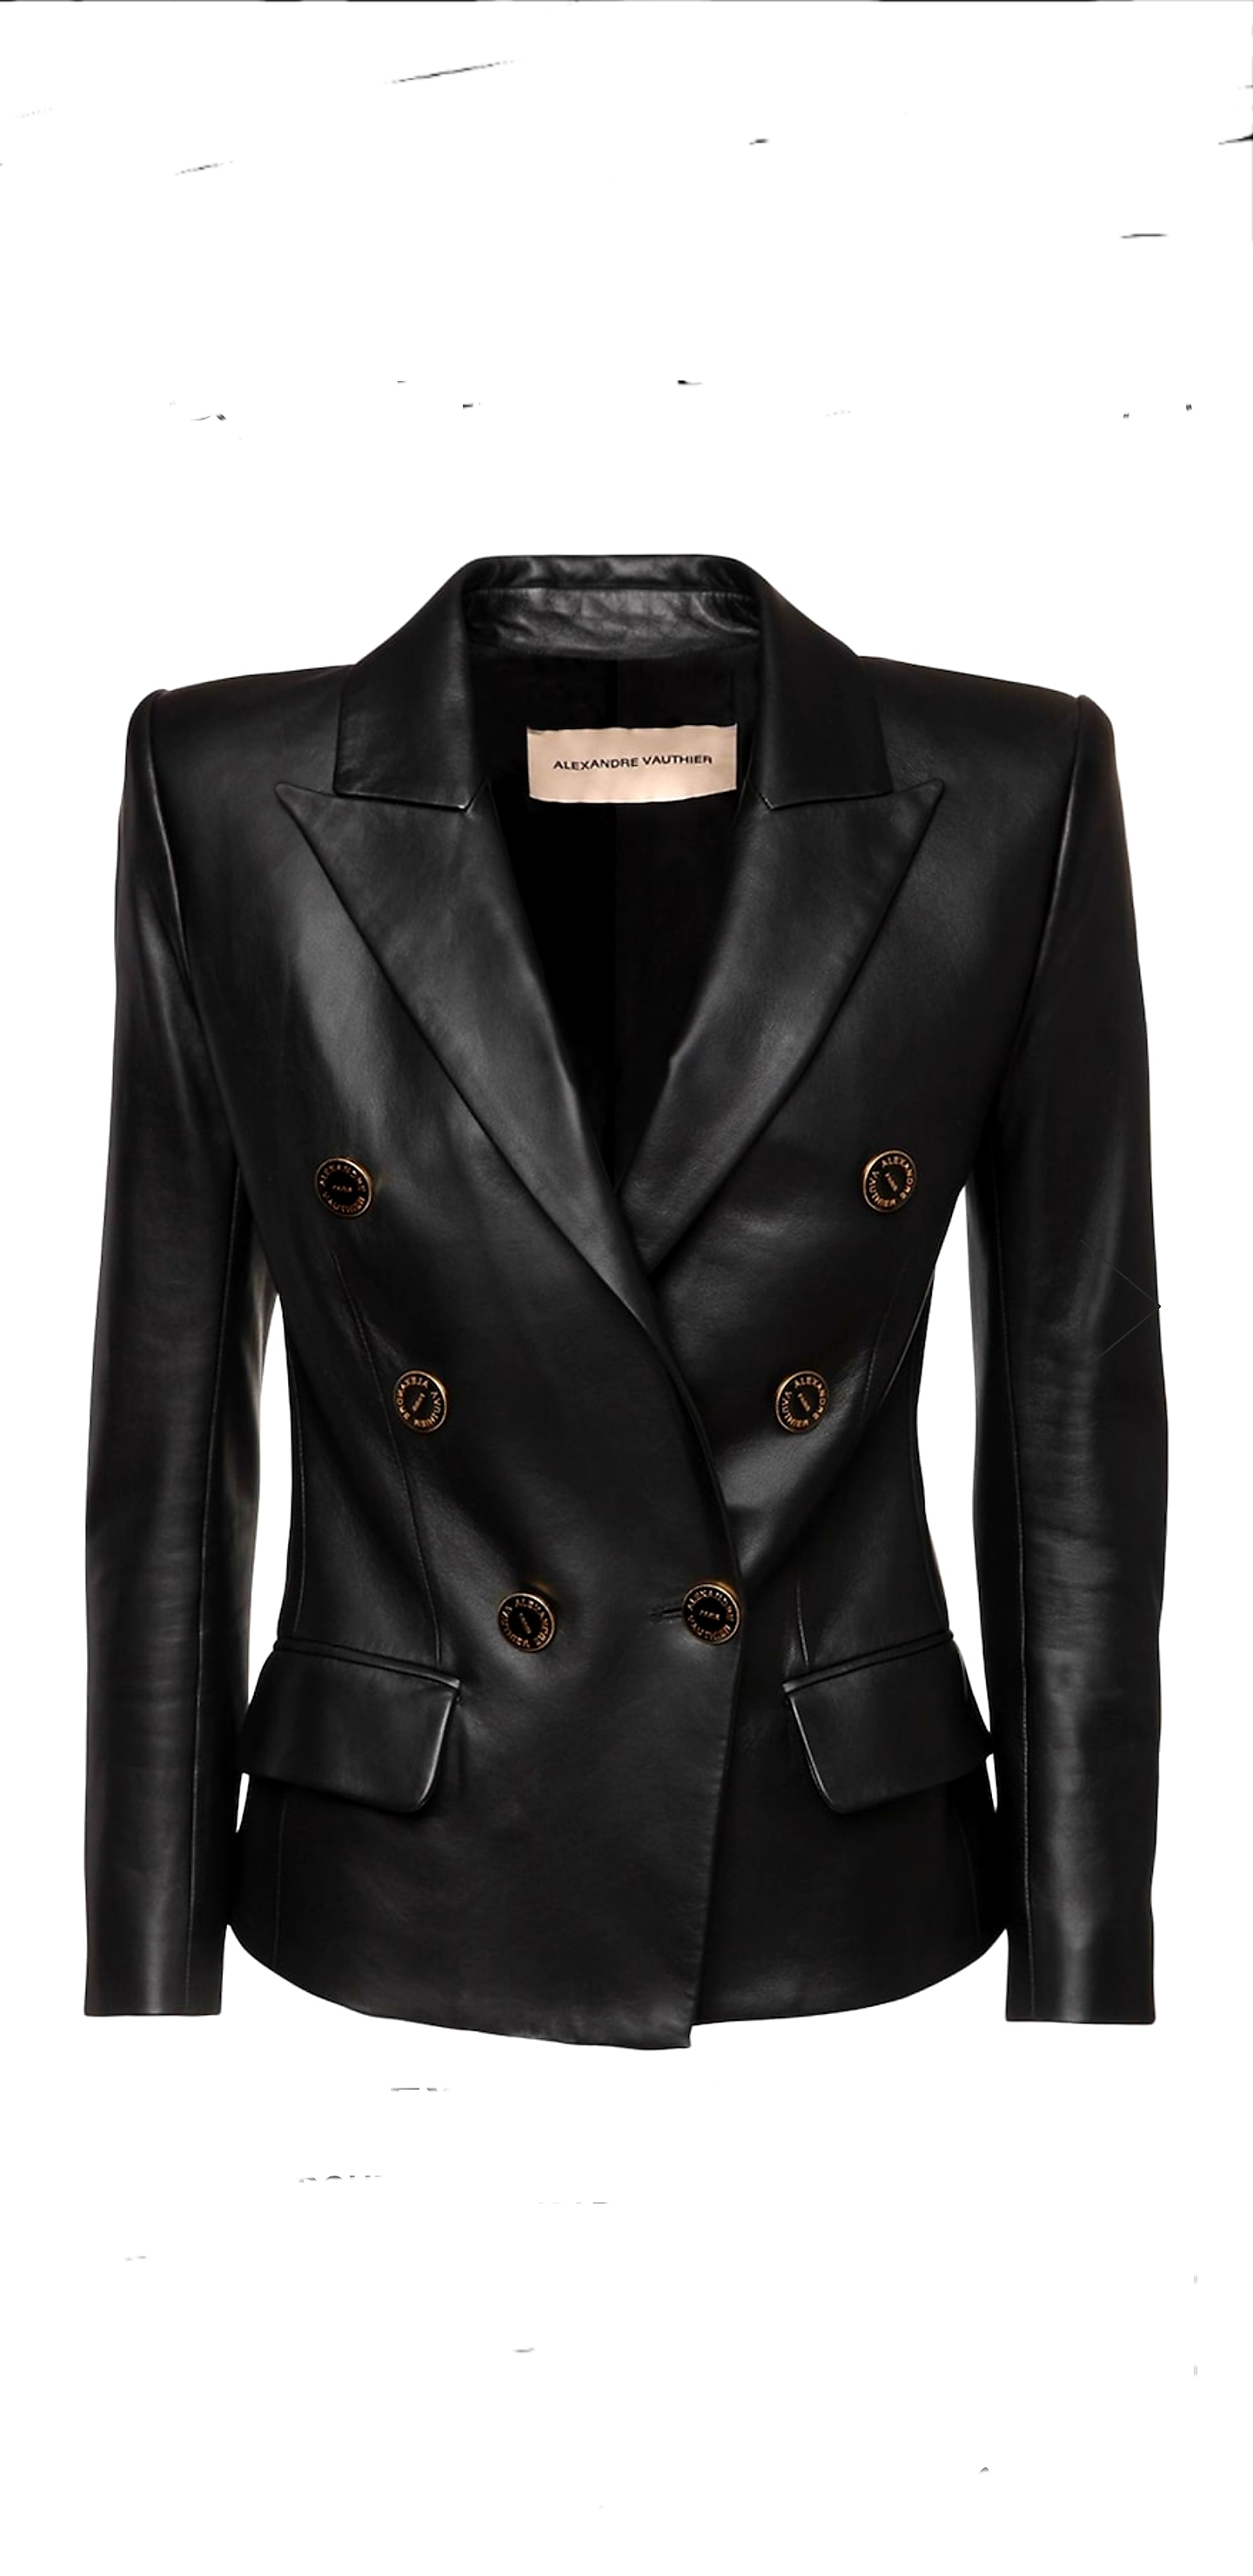 ALEXANDRE VAUTHIER ALEXANDRE VAUTHIER DOUBLE-BREASTED FITTED BLAZER